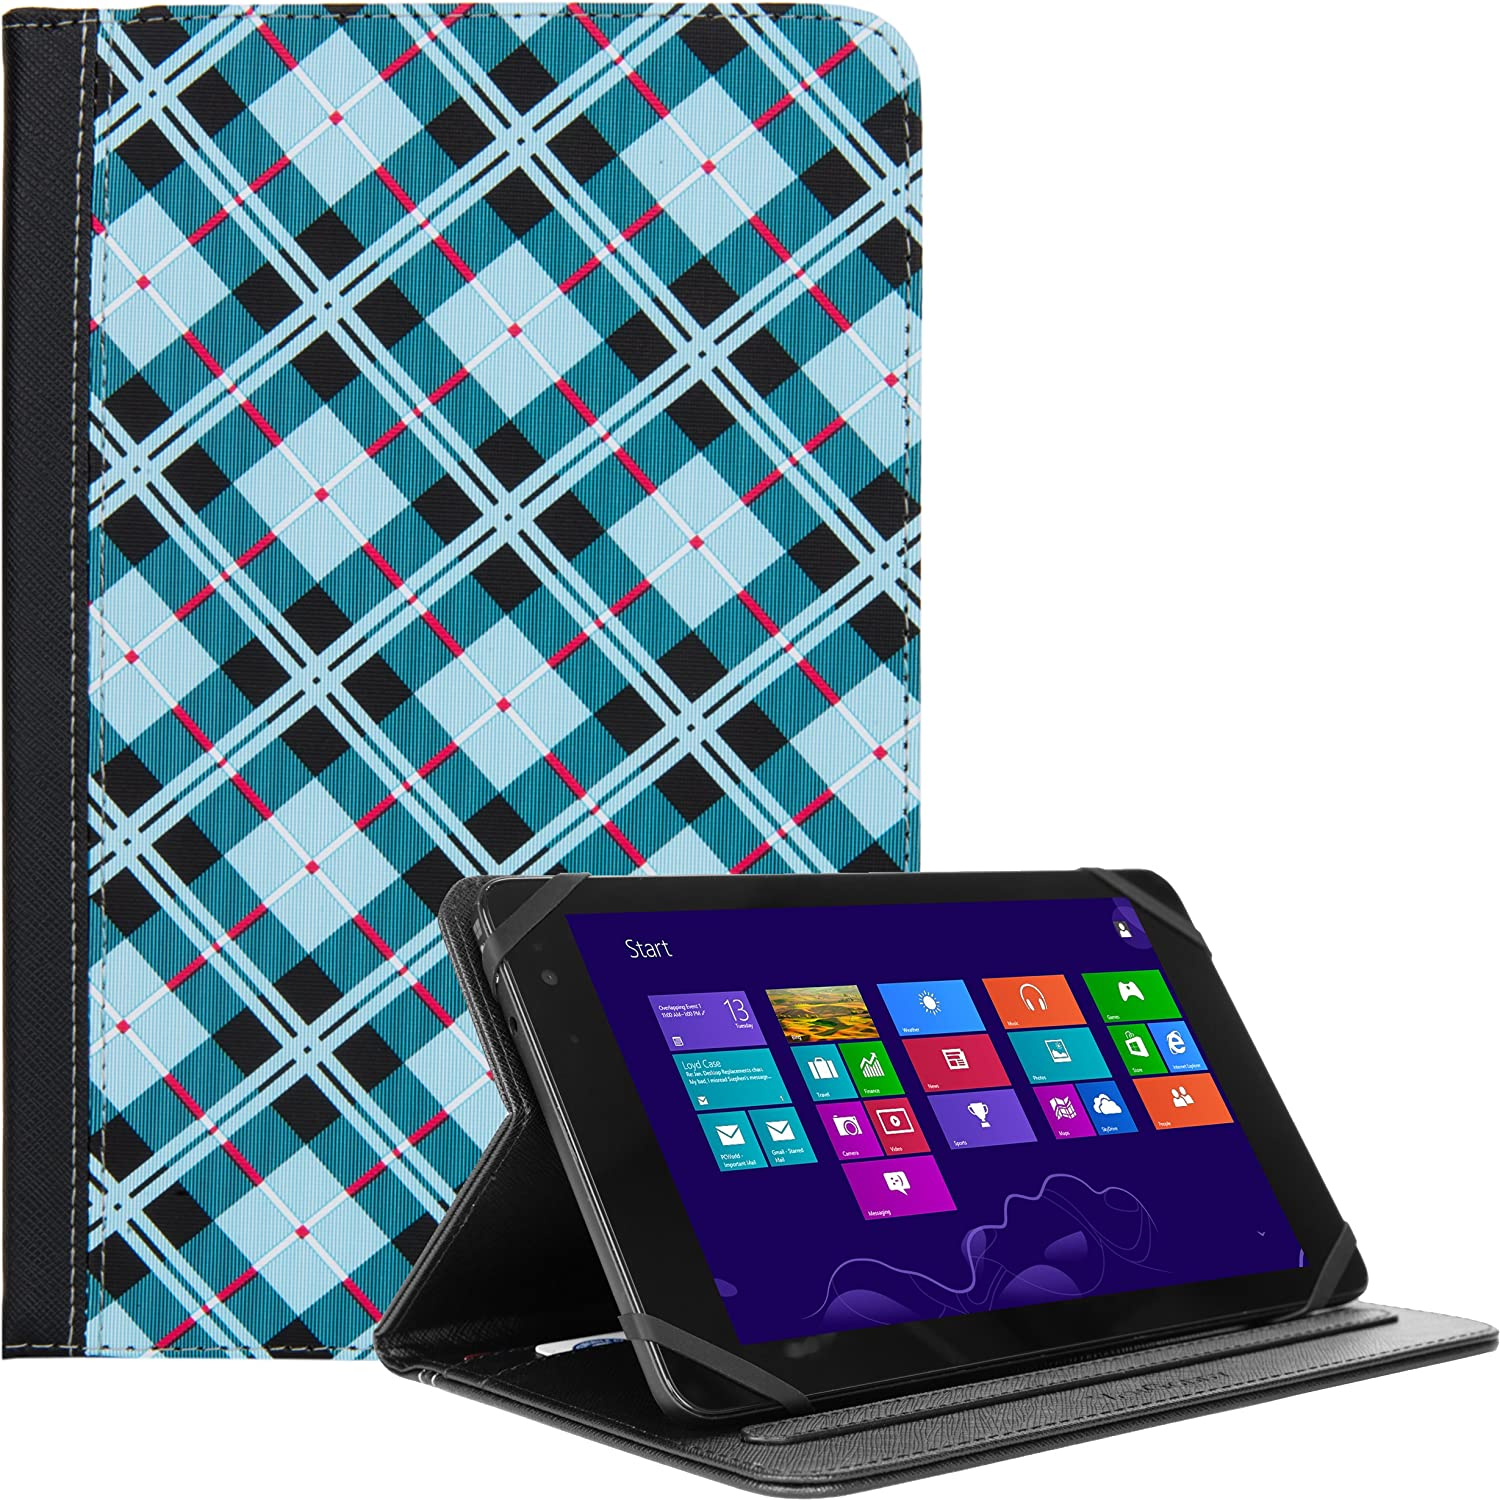 eBigValue Universal Portfolio Blue Checkers Fits for BLU TouchBook, Life 8, Chuwi V Series, Coby Kyros 7, Datawind UbiSlate 7, Dell Venue 8in Tablet